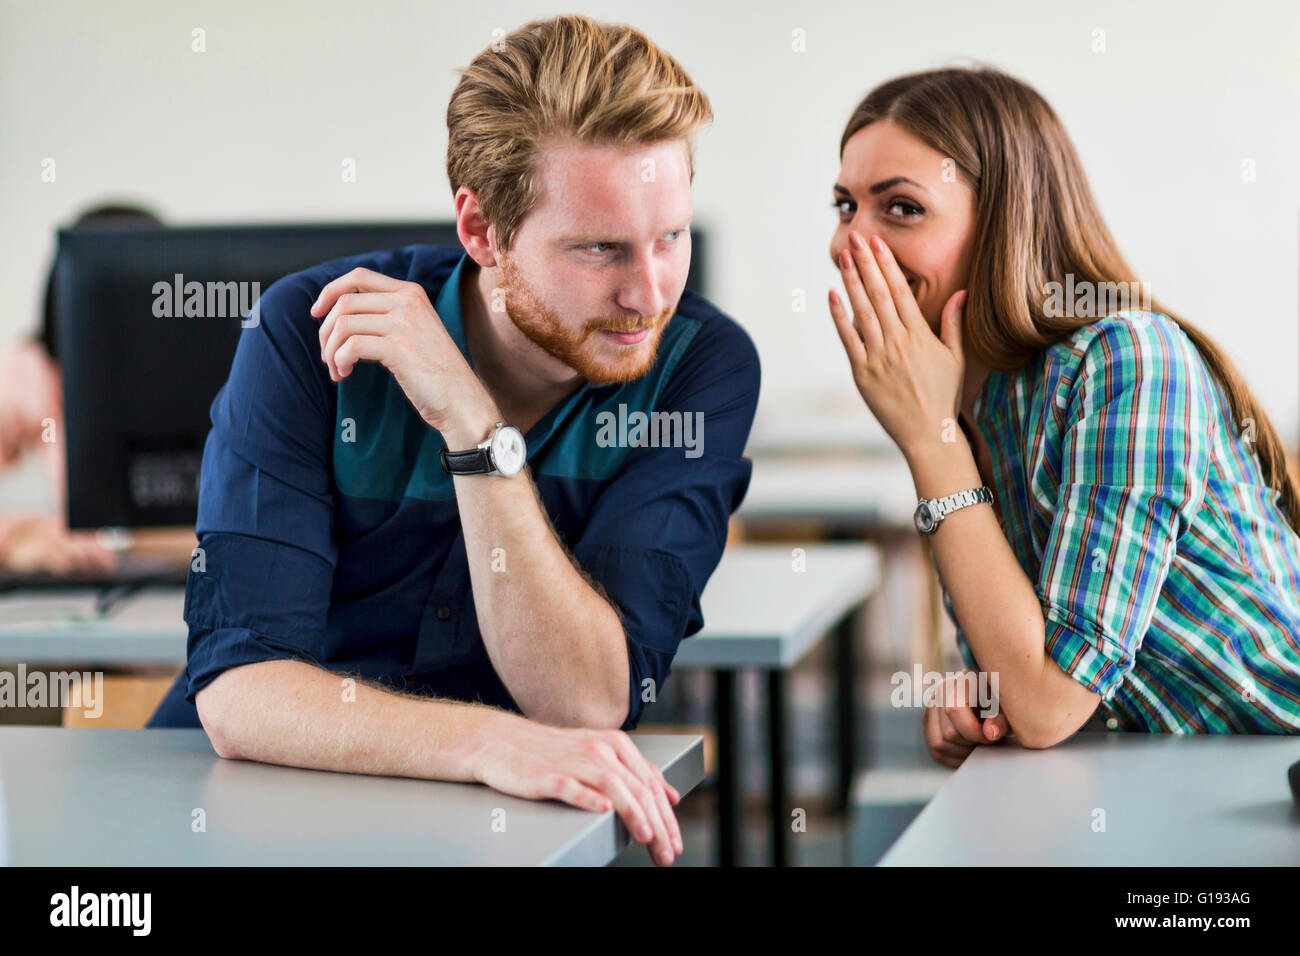 Students cheating by whispering to each other in a classroom - Stock Image